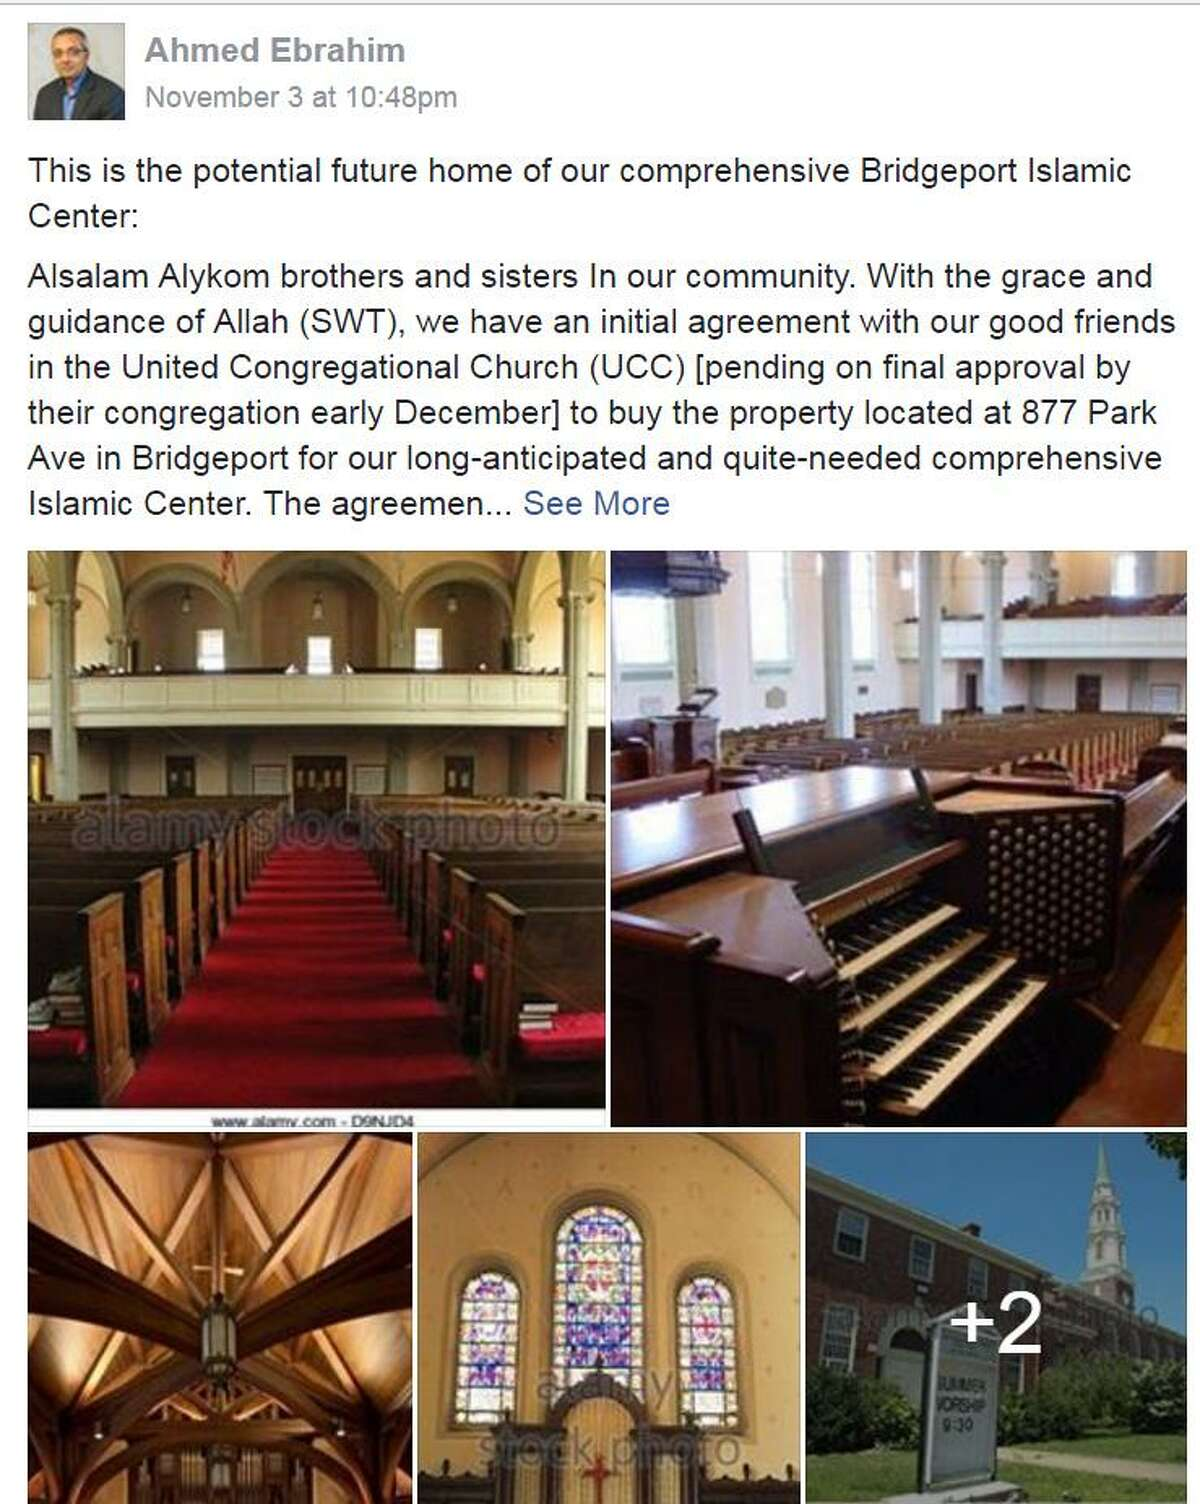 Ahmed Ebrahim, the leader of the Bridgeport Islamic Cultural Center, announced on the center's Facebook page that United Congregational Church was being considered as BICC's new home.